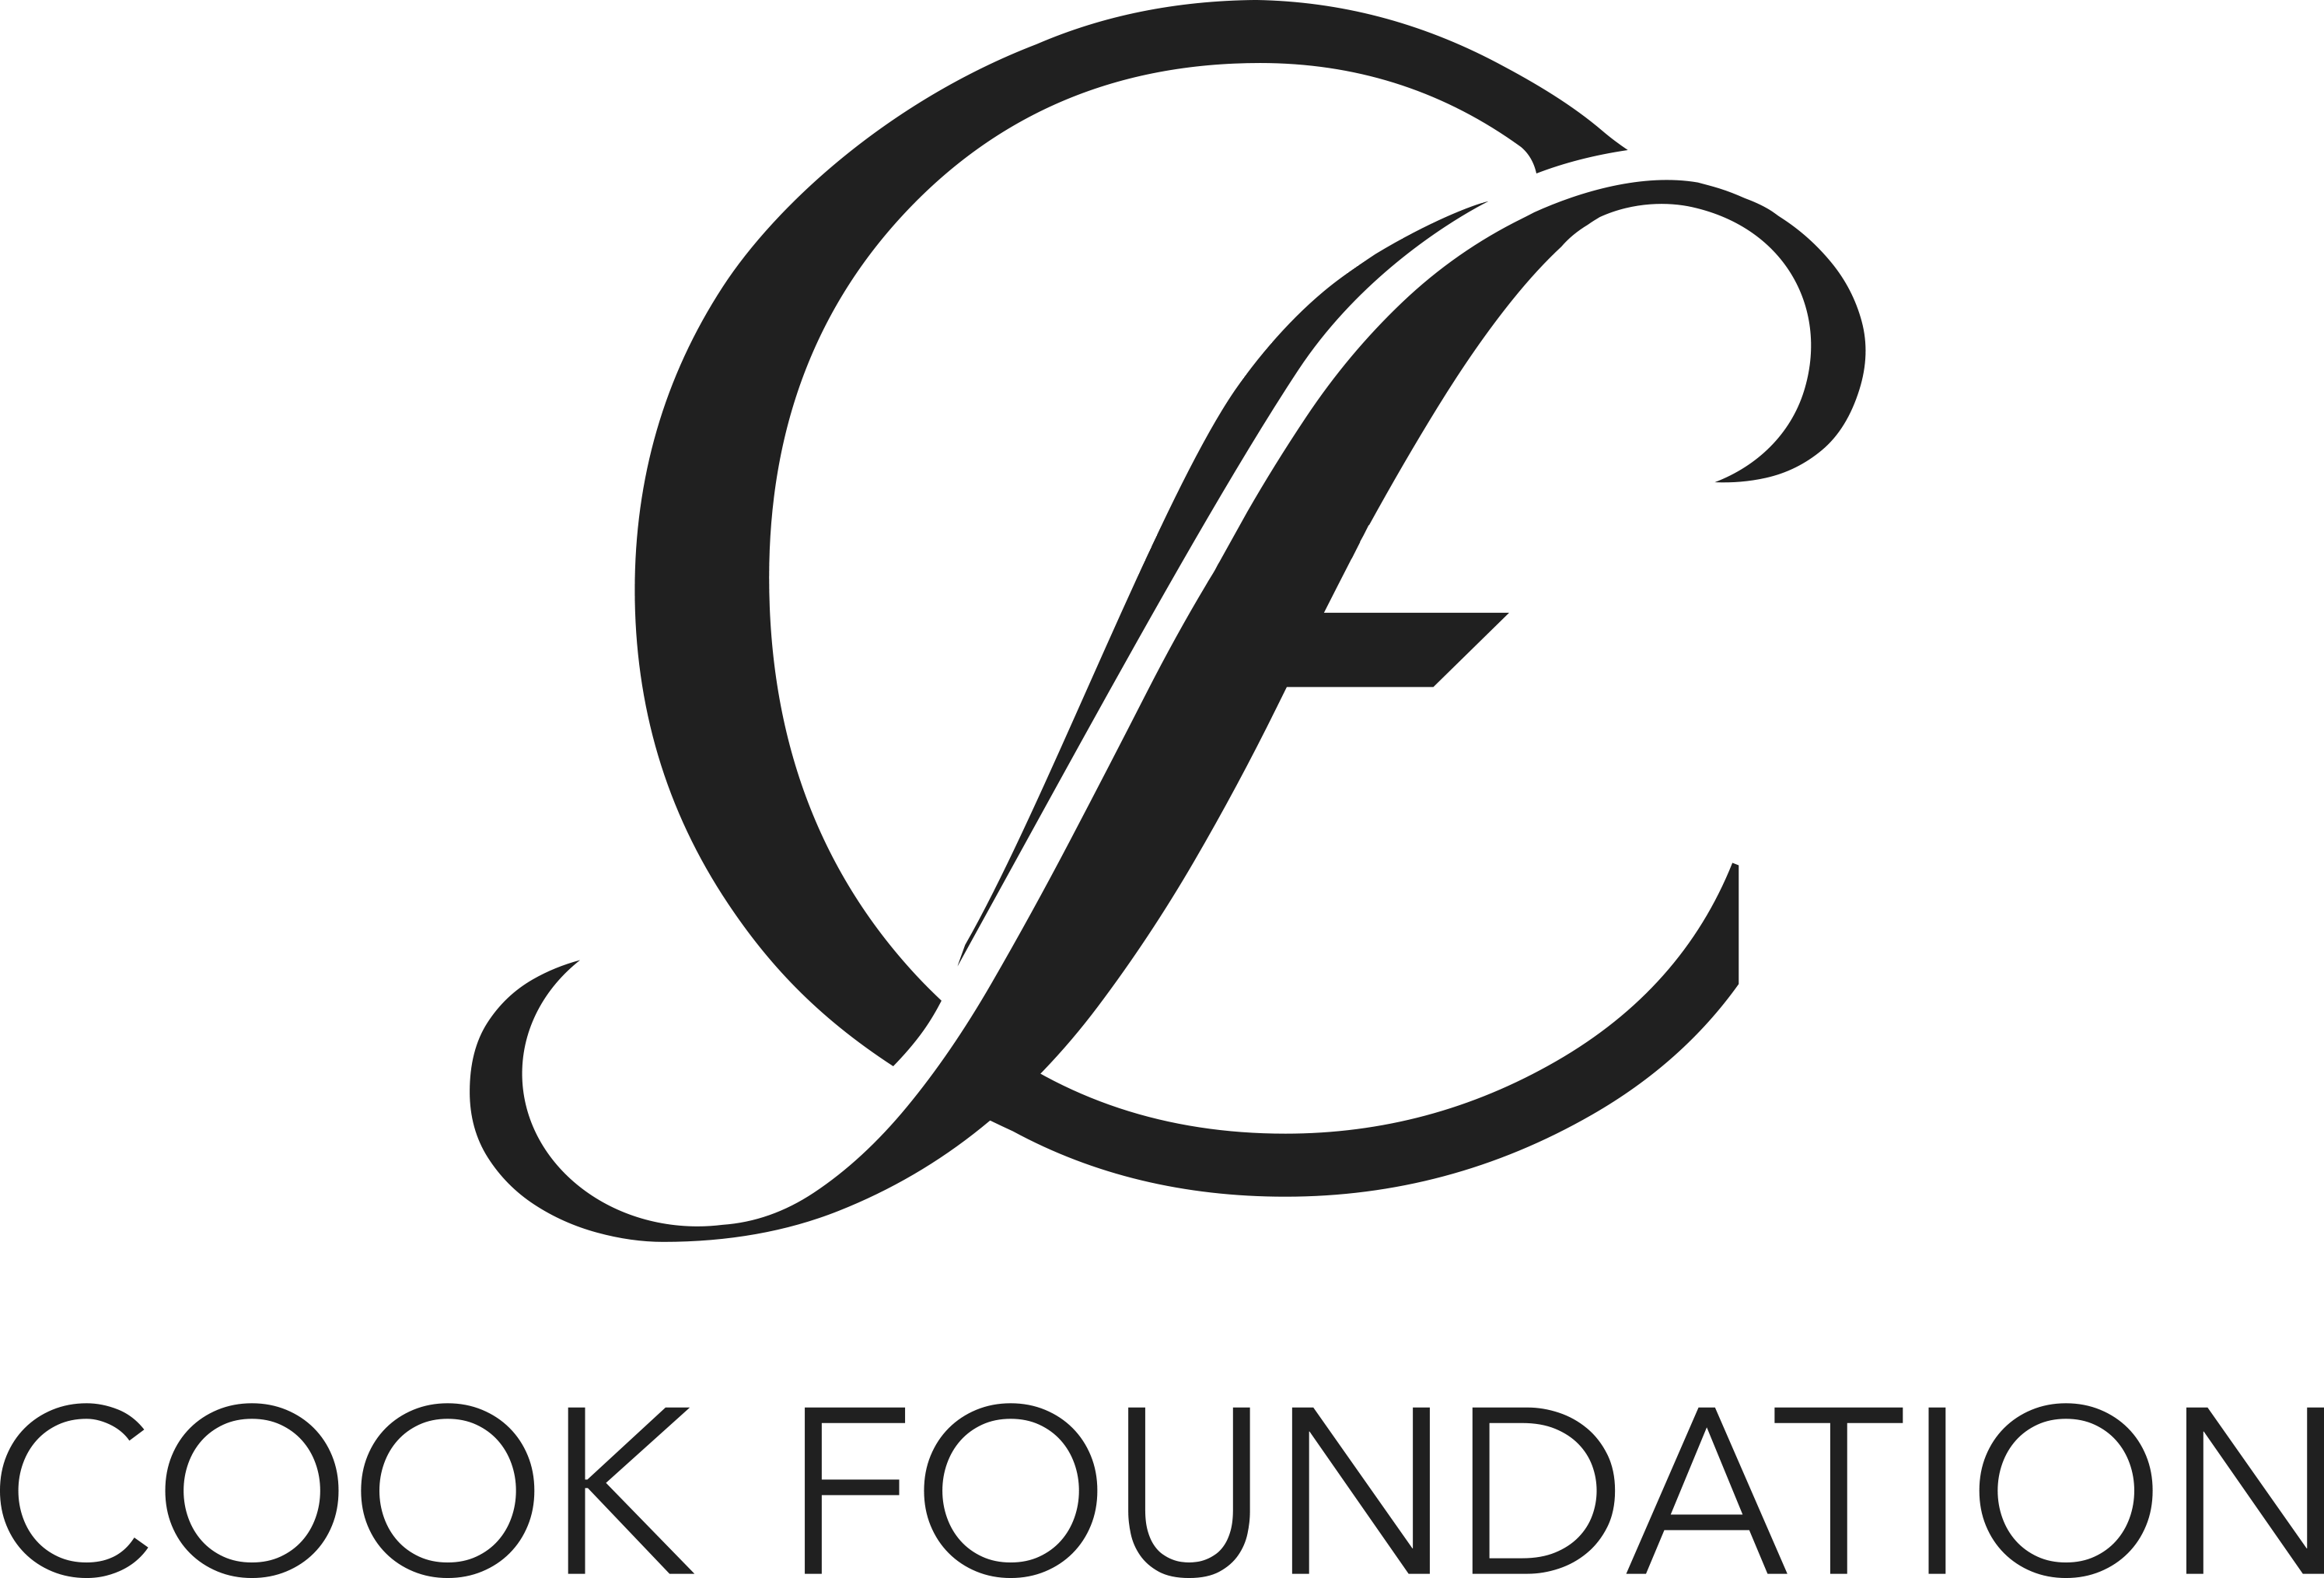 Cook Foundation